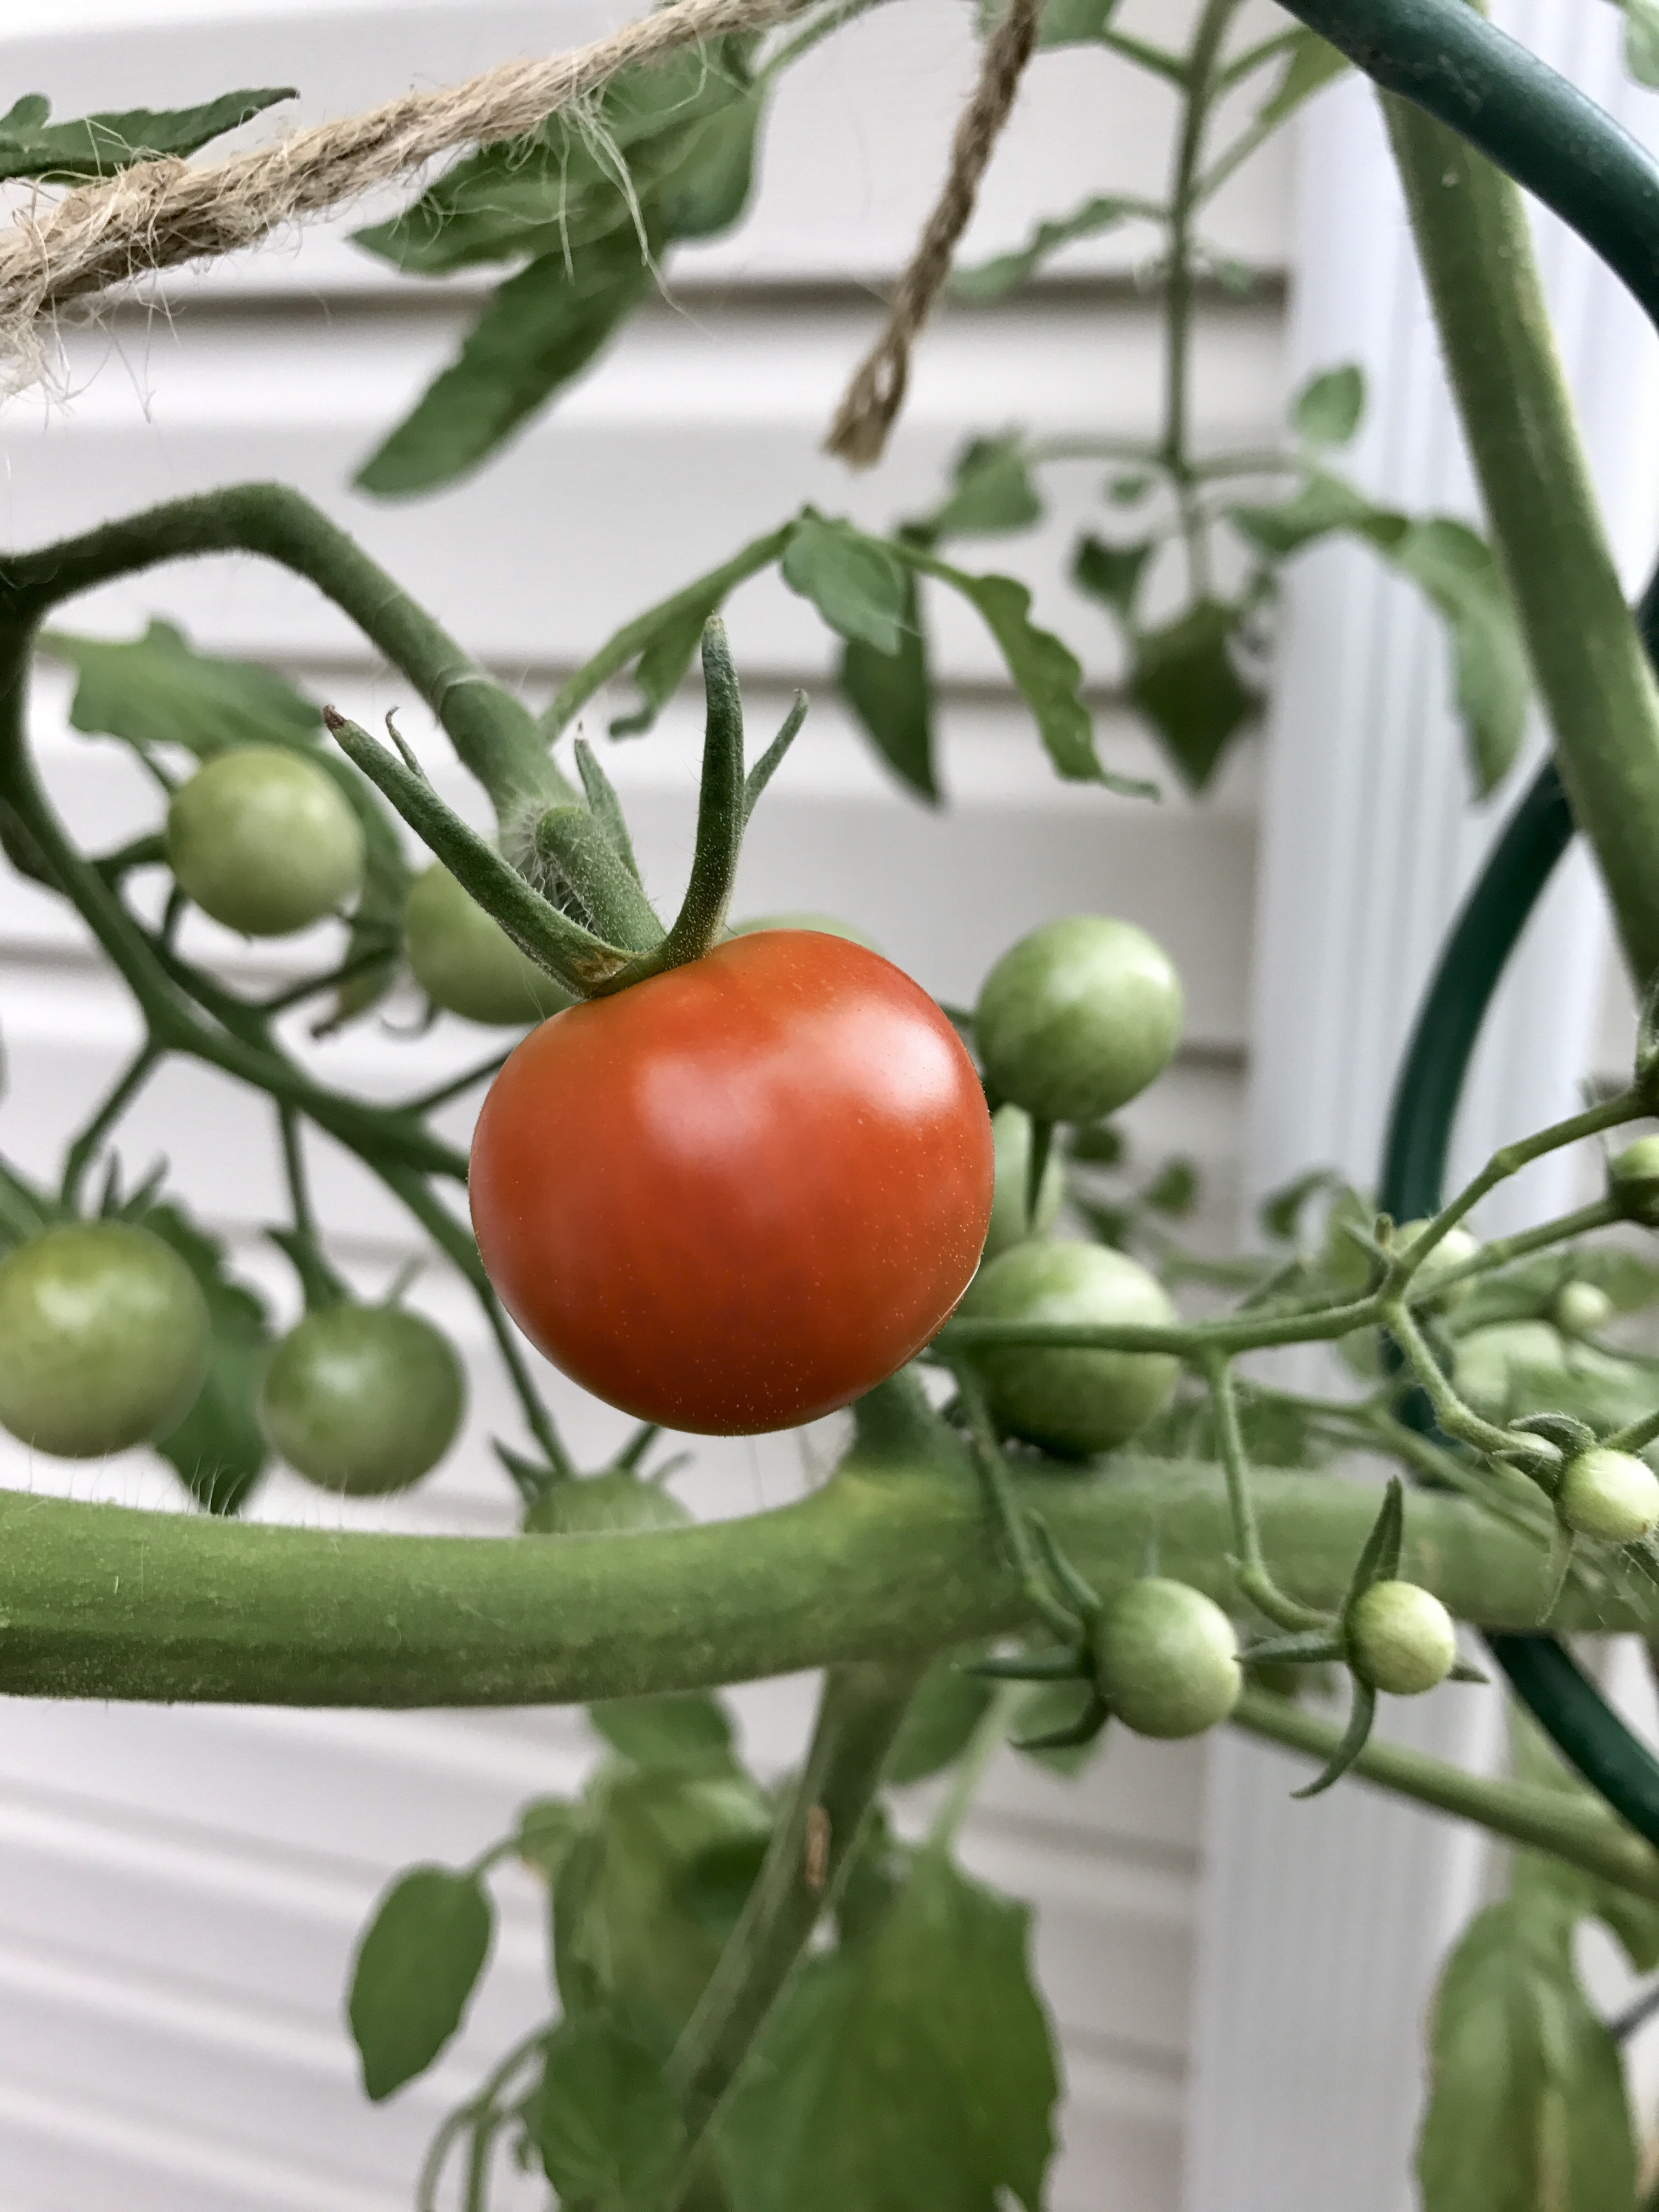 Tomatoes garden ve ables